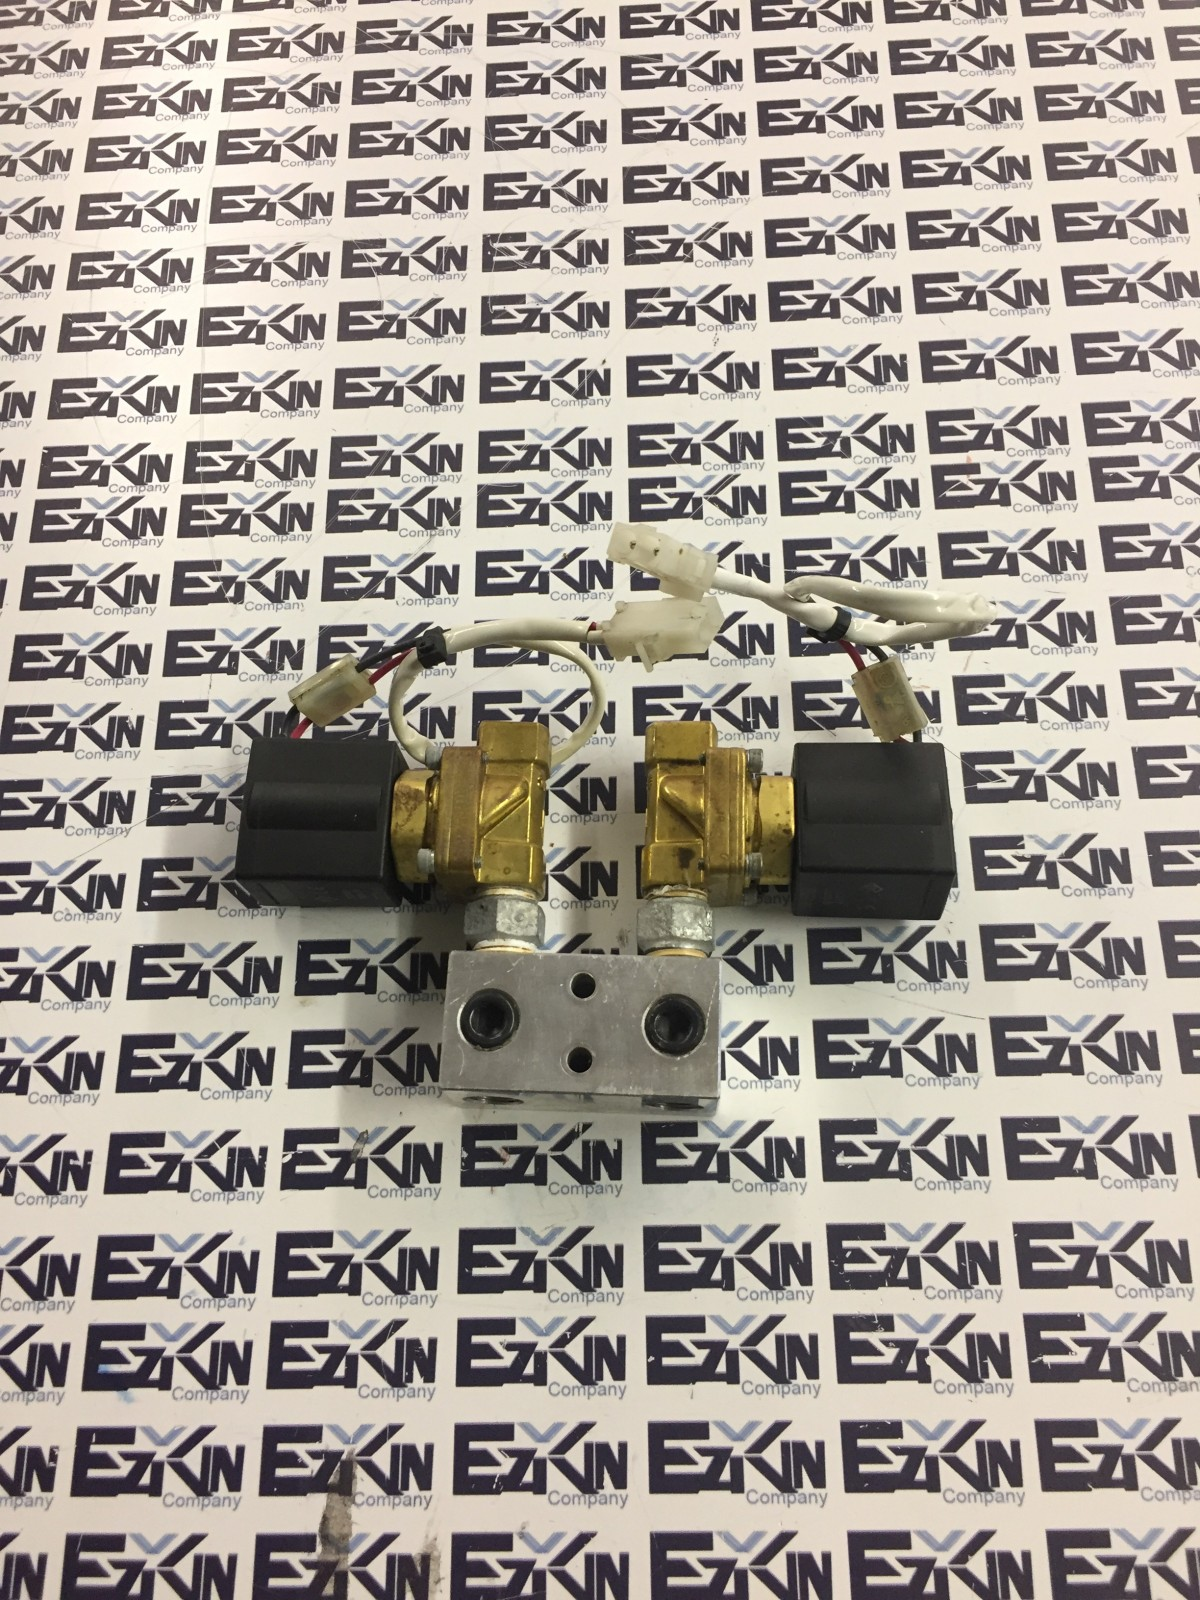 SMC Solenoid Valve VXZ2230-03-5GS1 24vdc coil TWO and ADAPTER MODULE VALVE